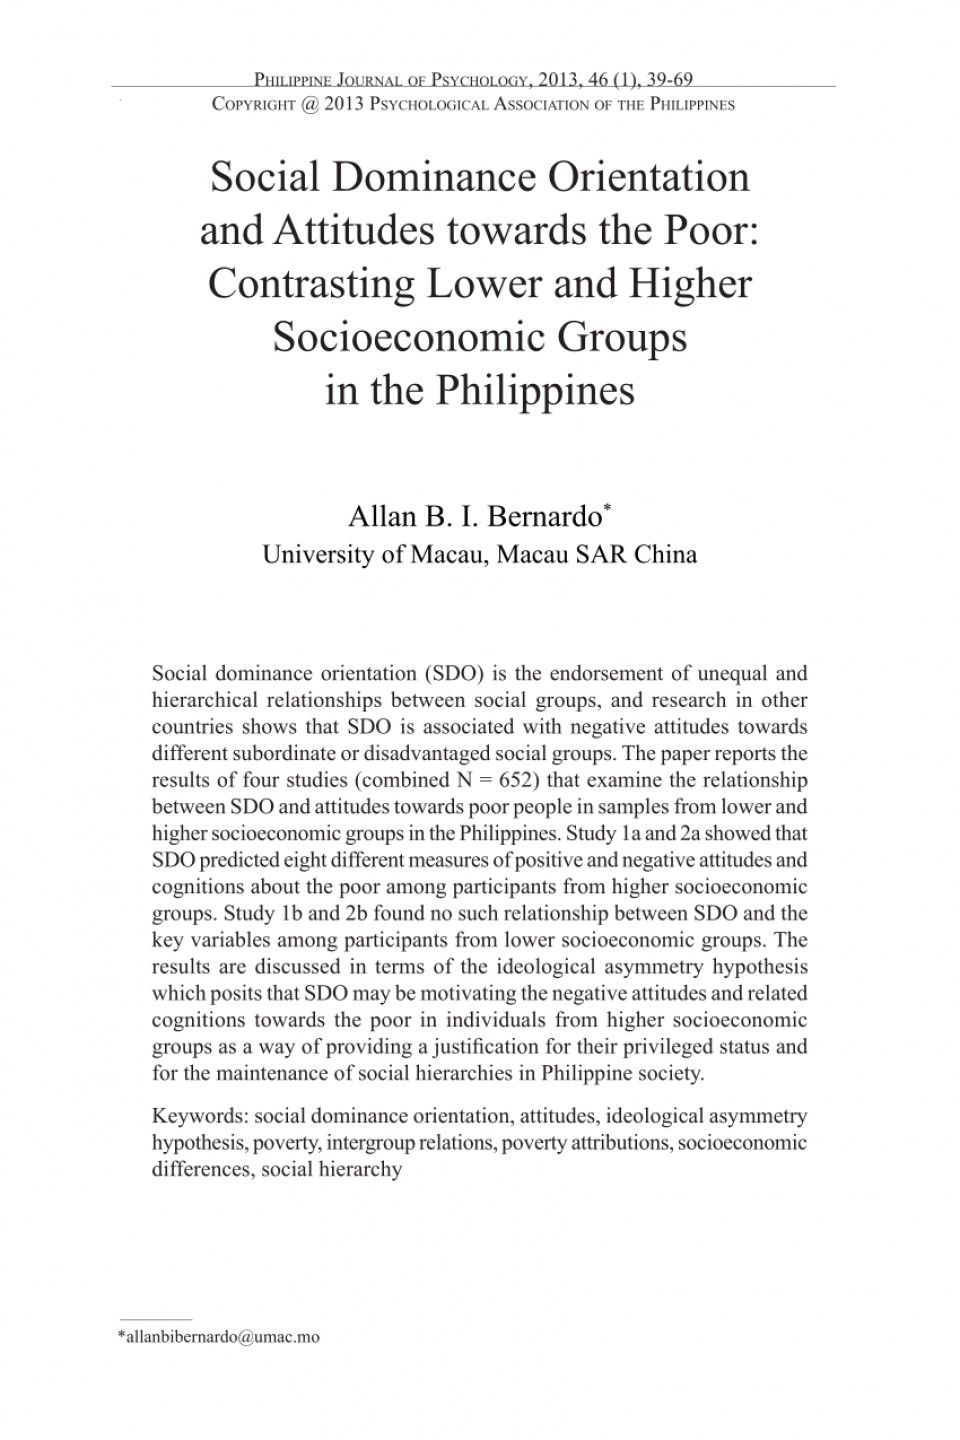 009 Research Paper Largepreview Poverty In The Philippines Remarkable Abstract 960